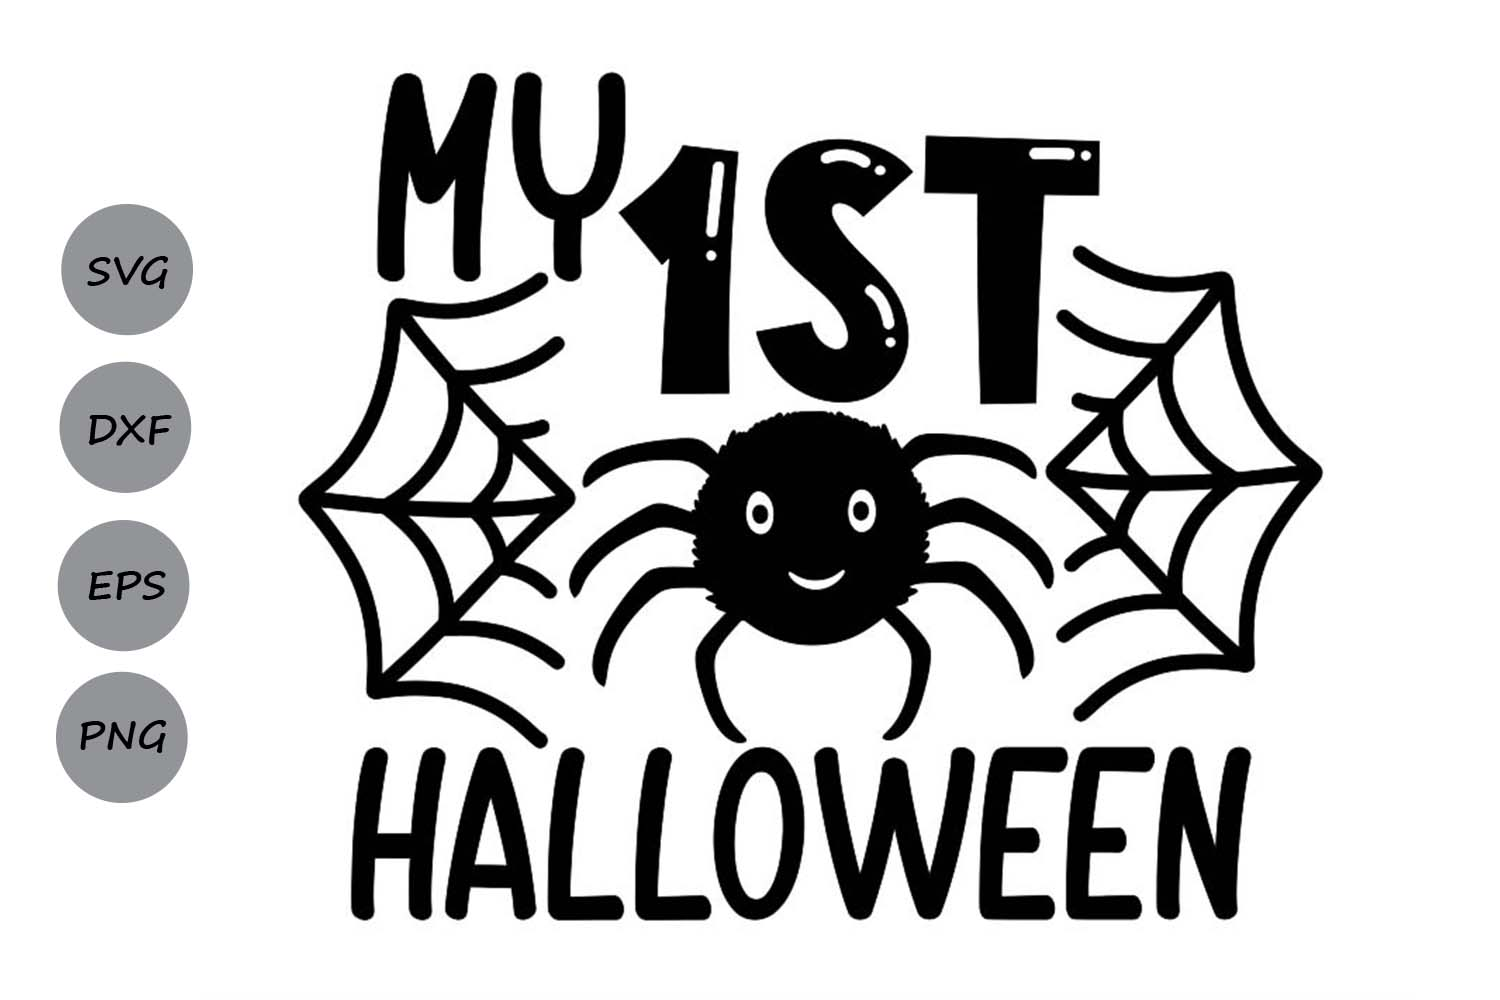 Download Free My 1st Halloween Graphic By Cosmosfineart Creative Fabrica for Cricut Explore, Silhouette and other cutting machines.